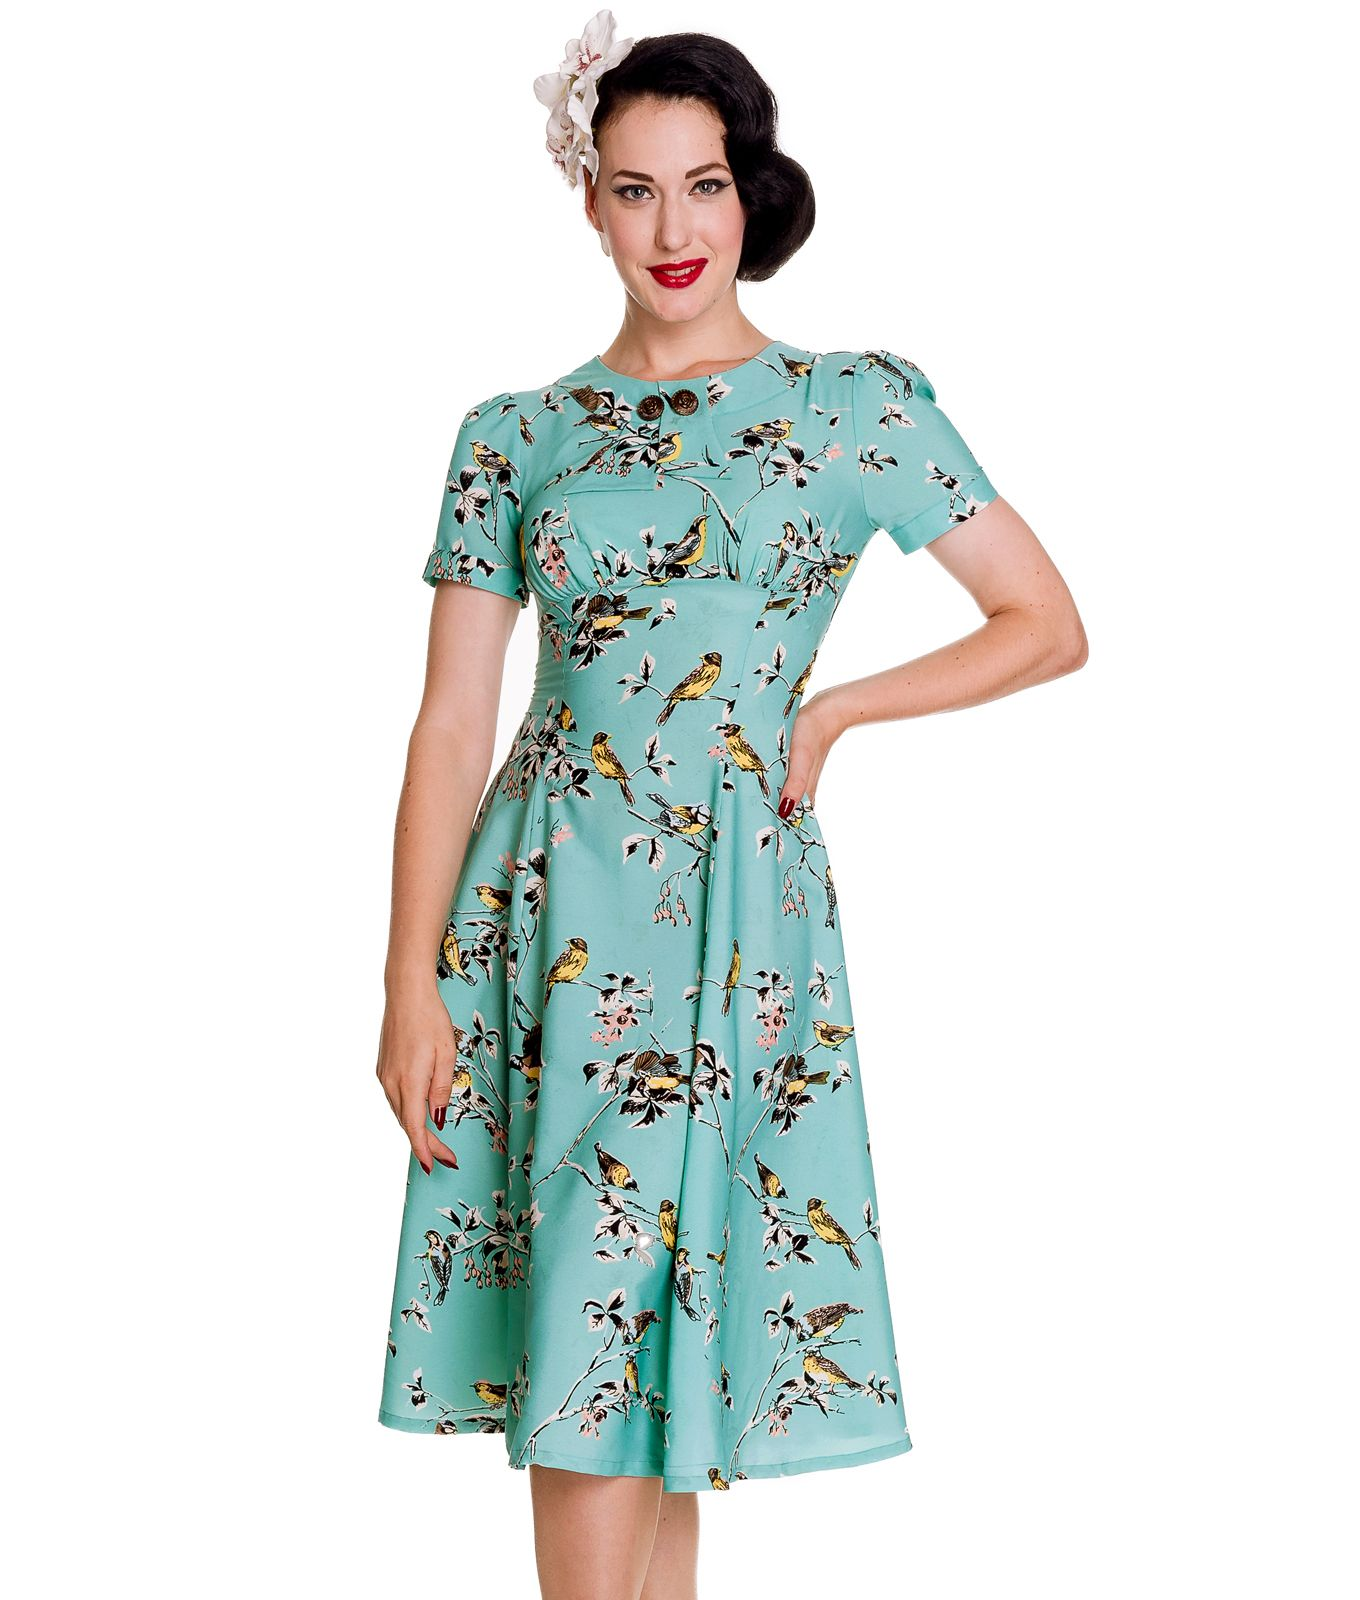 Beautiful ss style tea dress with pretty retro style print